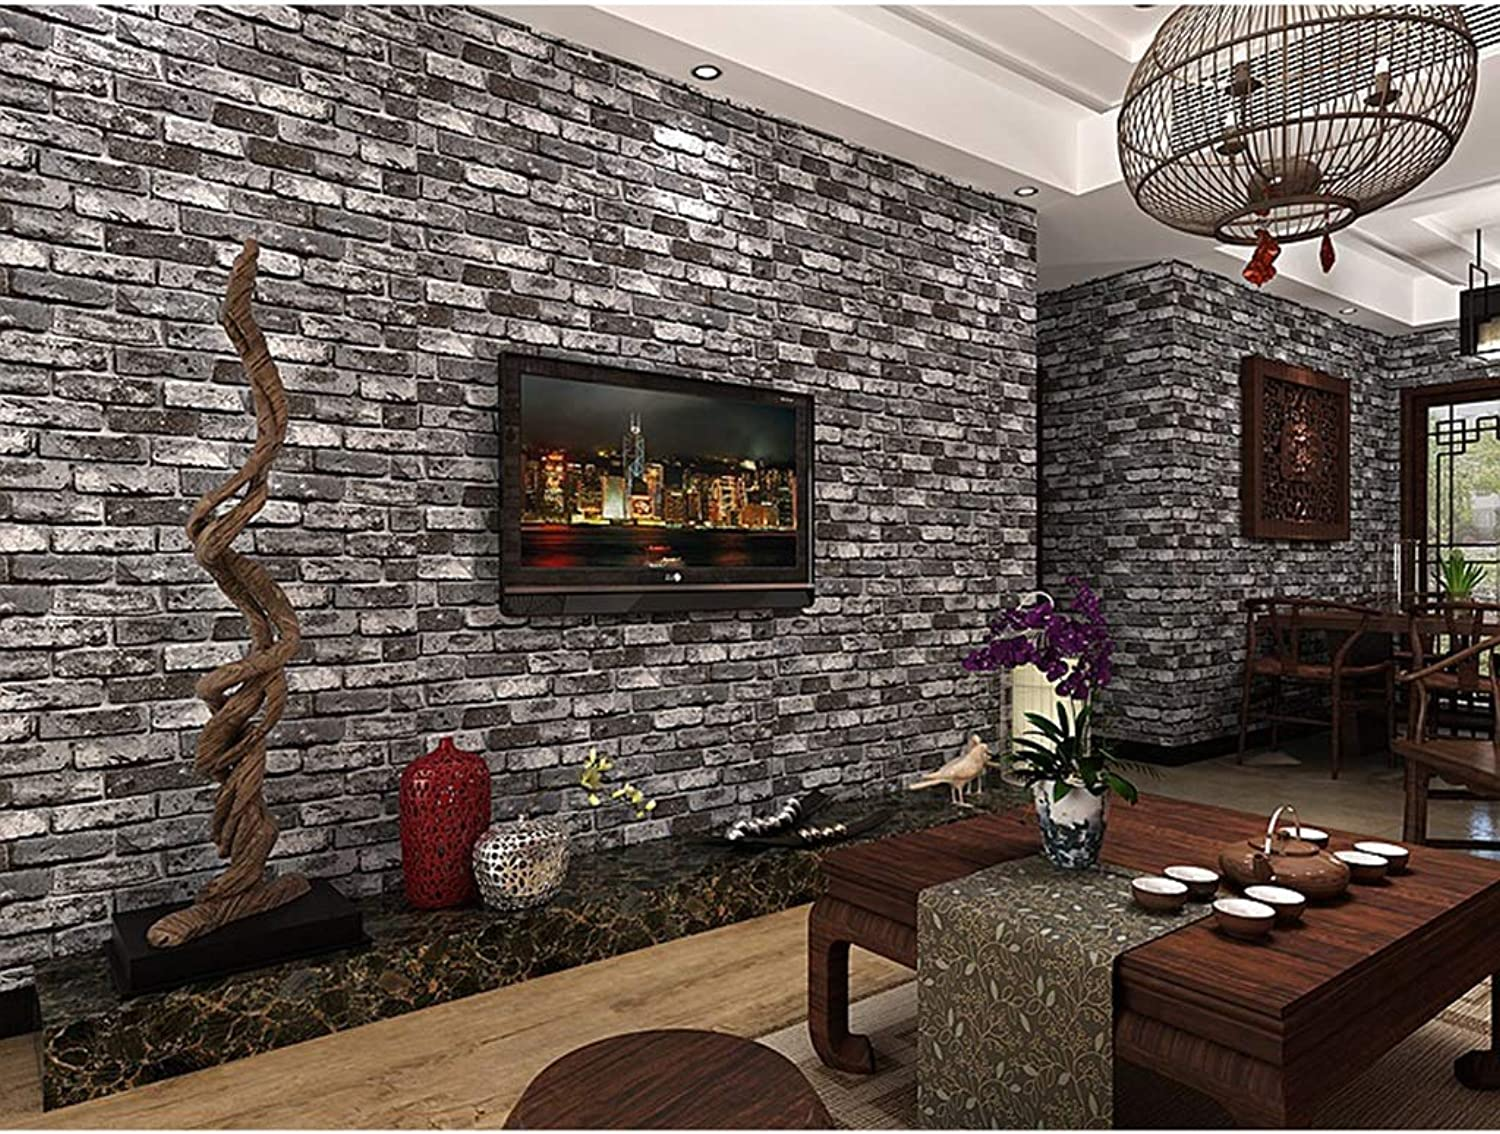 AMHD Wallpaper Vintage Brick Pattern Wallpaper 3D Effect PVC Vinyl Wall Decoration for Bars Cafes Restaurants LMD029 (color   A, Size   393in20.8in)